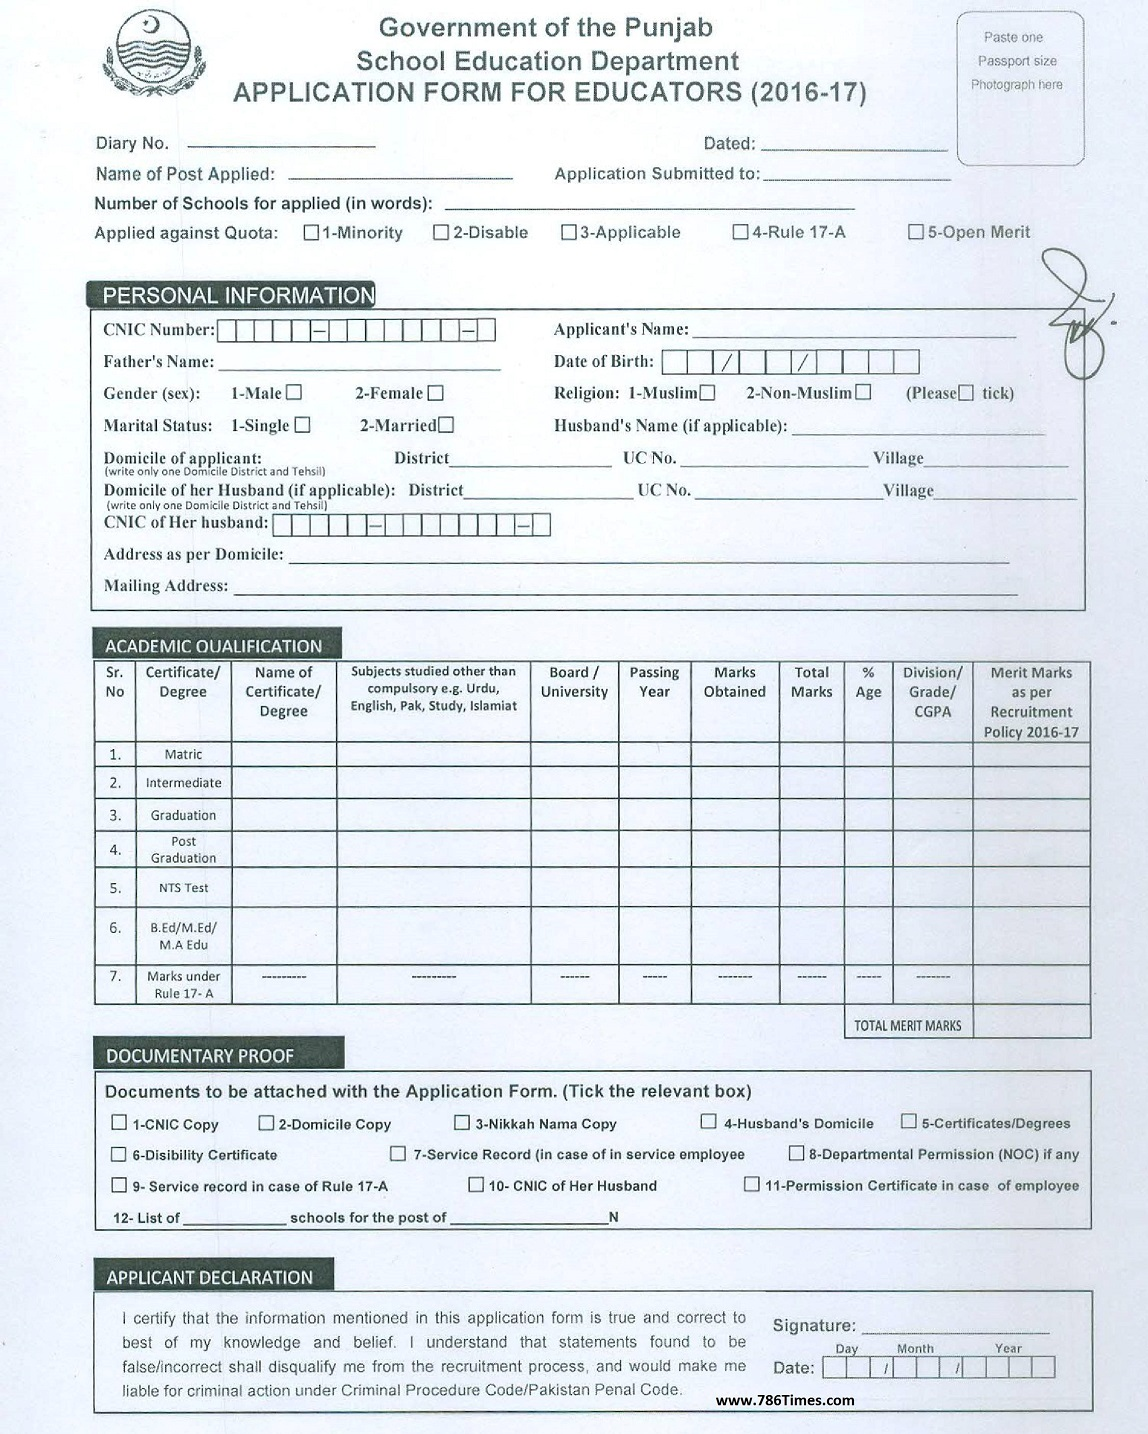 application form for educators aeo jobs times application form for educators aeo jobs 2016 2017 in school education department